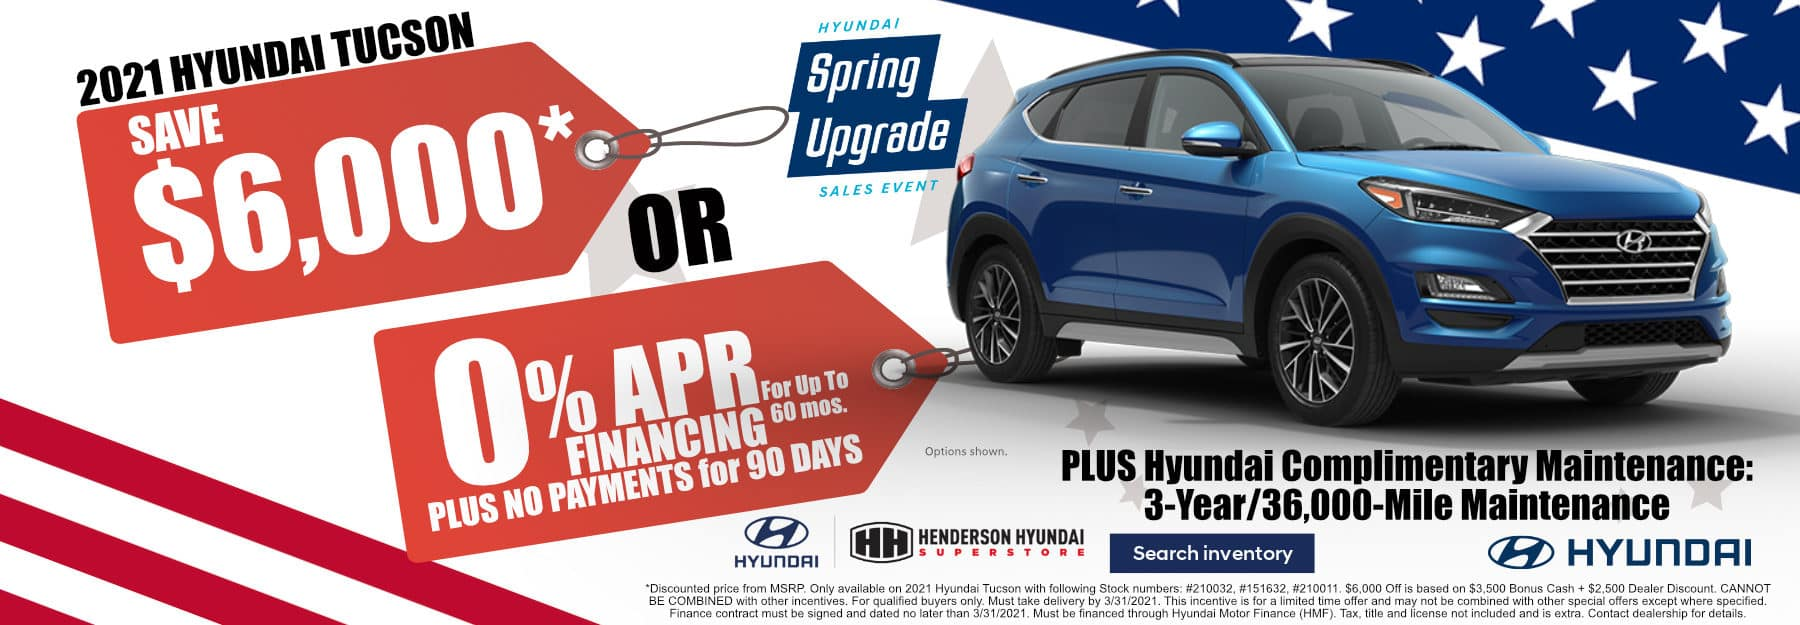 NEWNEW_March_2021_MY21TuCSON$6,000_Henderson_Hyundai